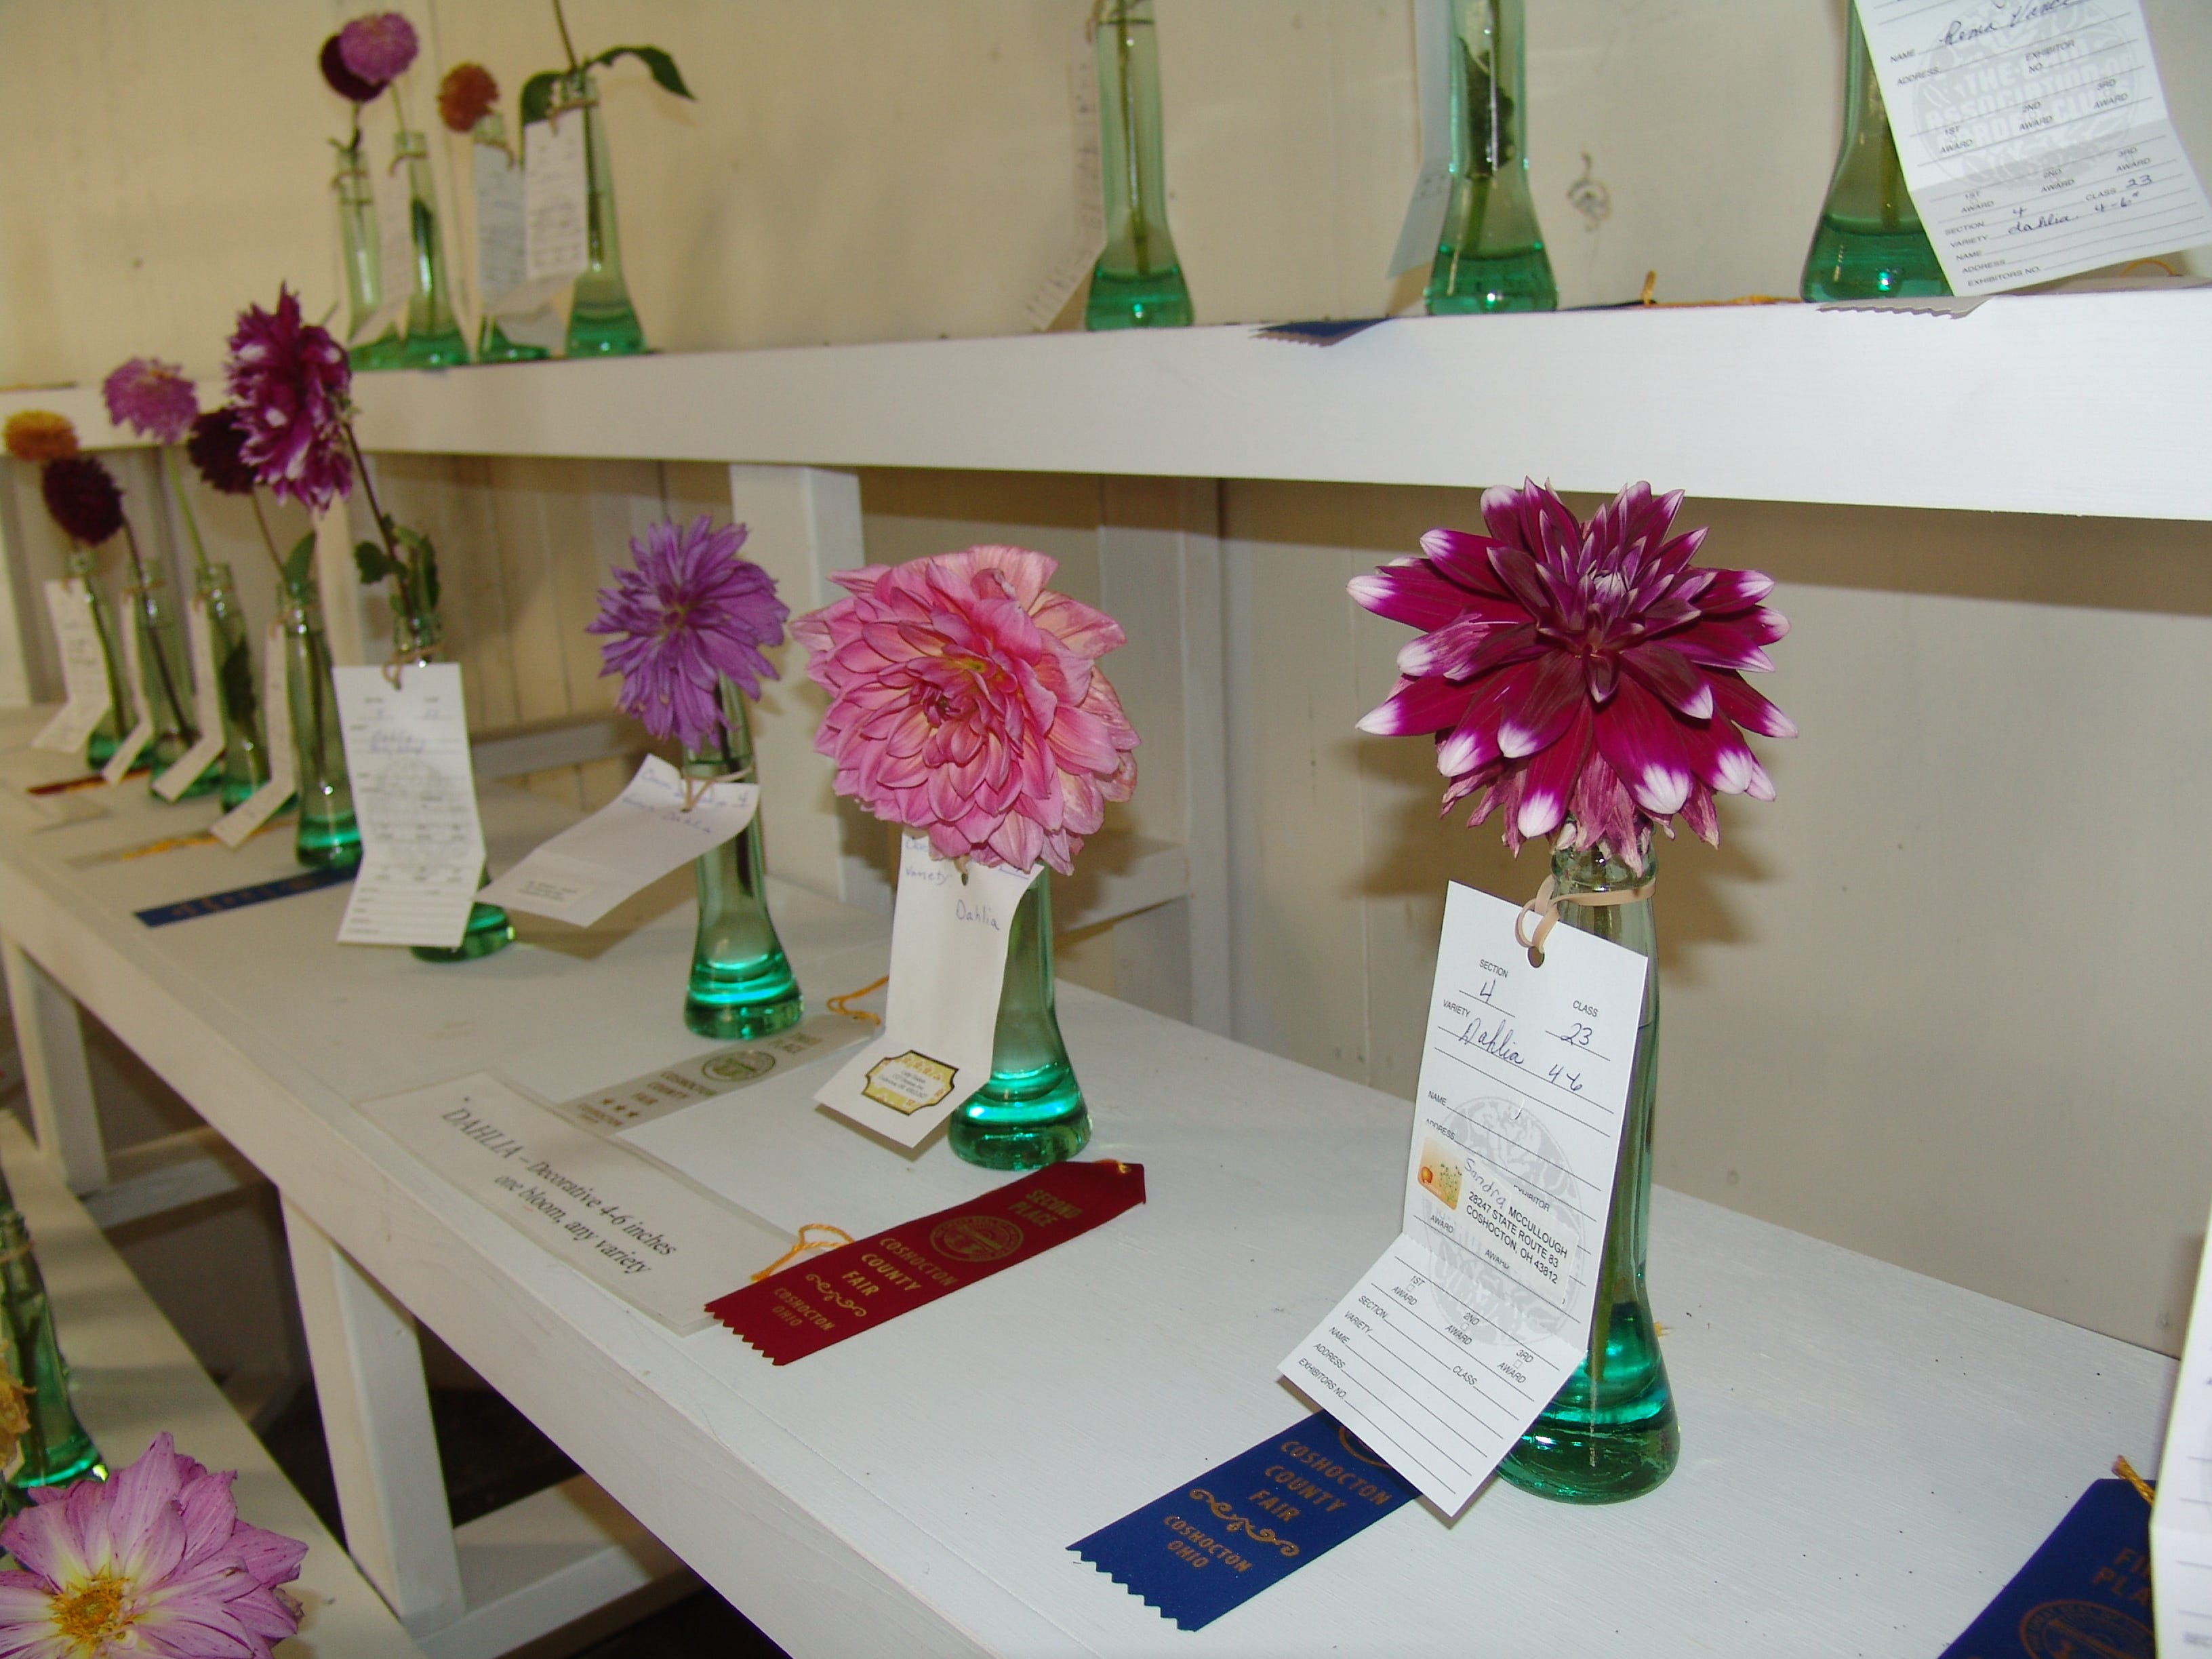 Dahlias, including a blue-ribbon winner, grown by members of the Town & Country Garden Club.